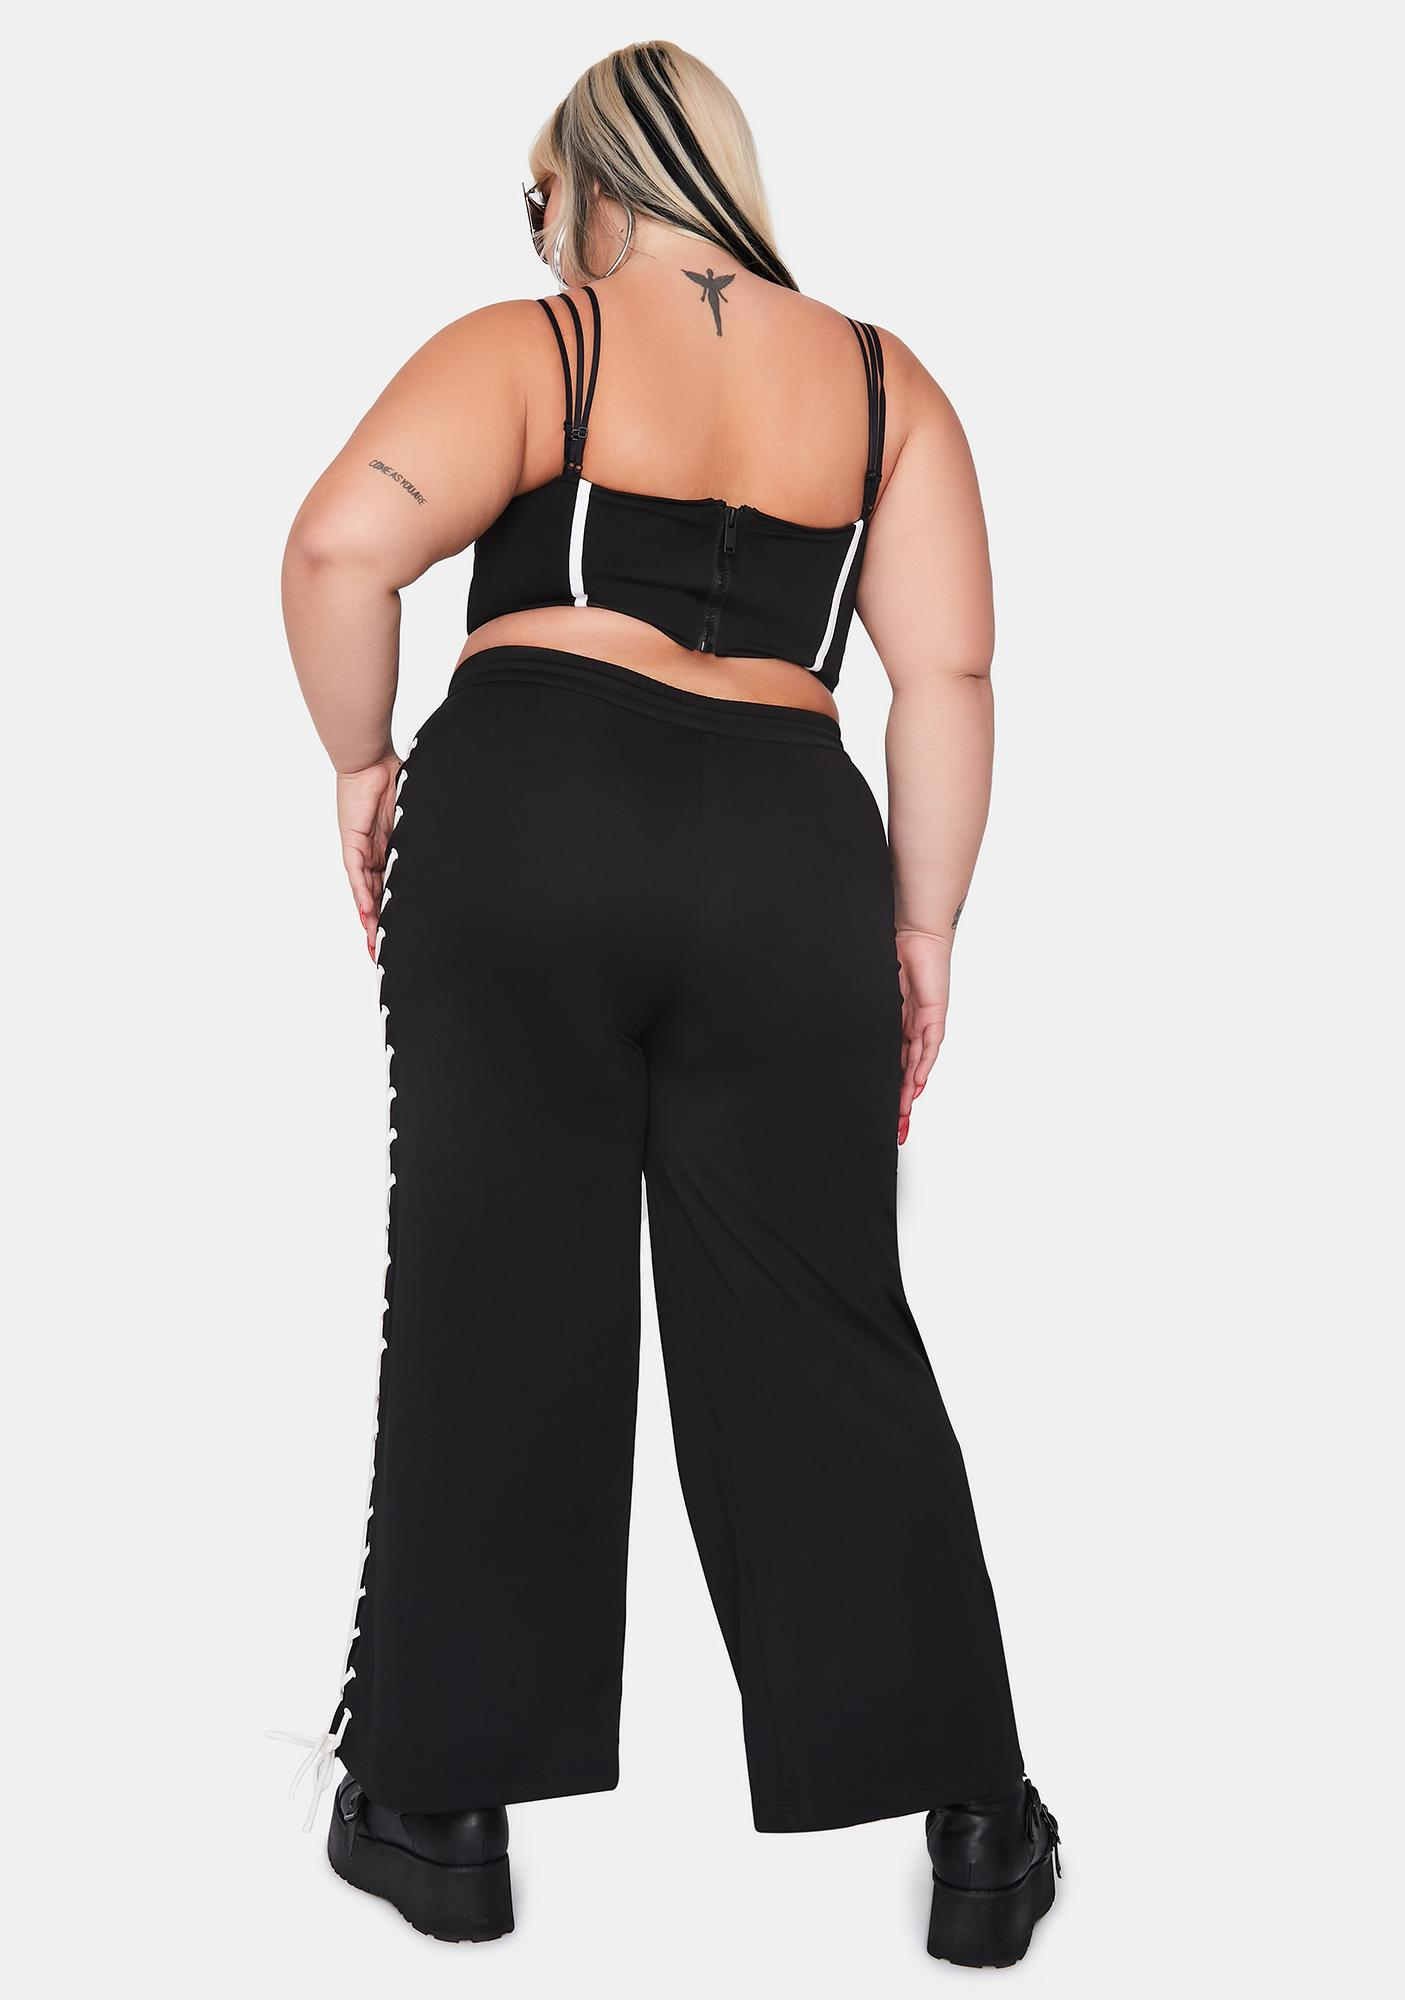 Poster Grl Perfect Double Team Pant Set